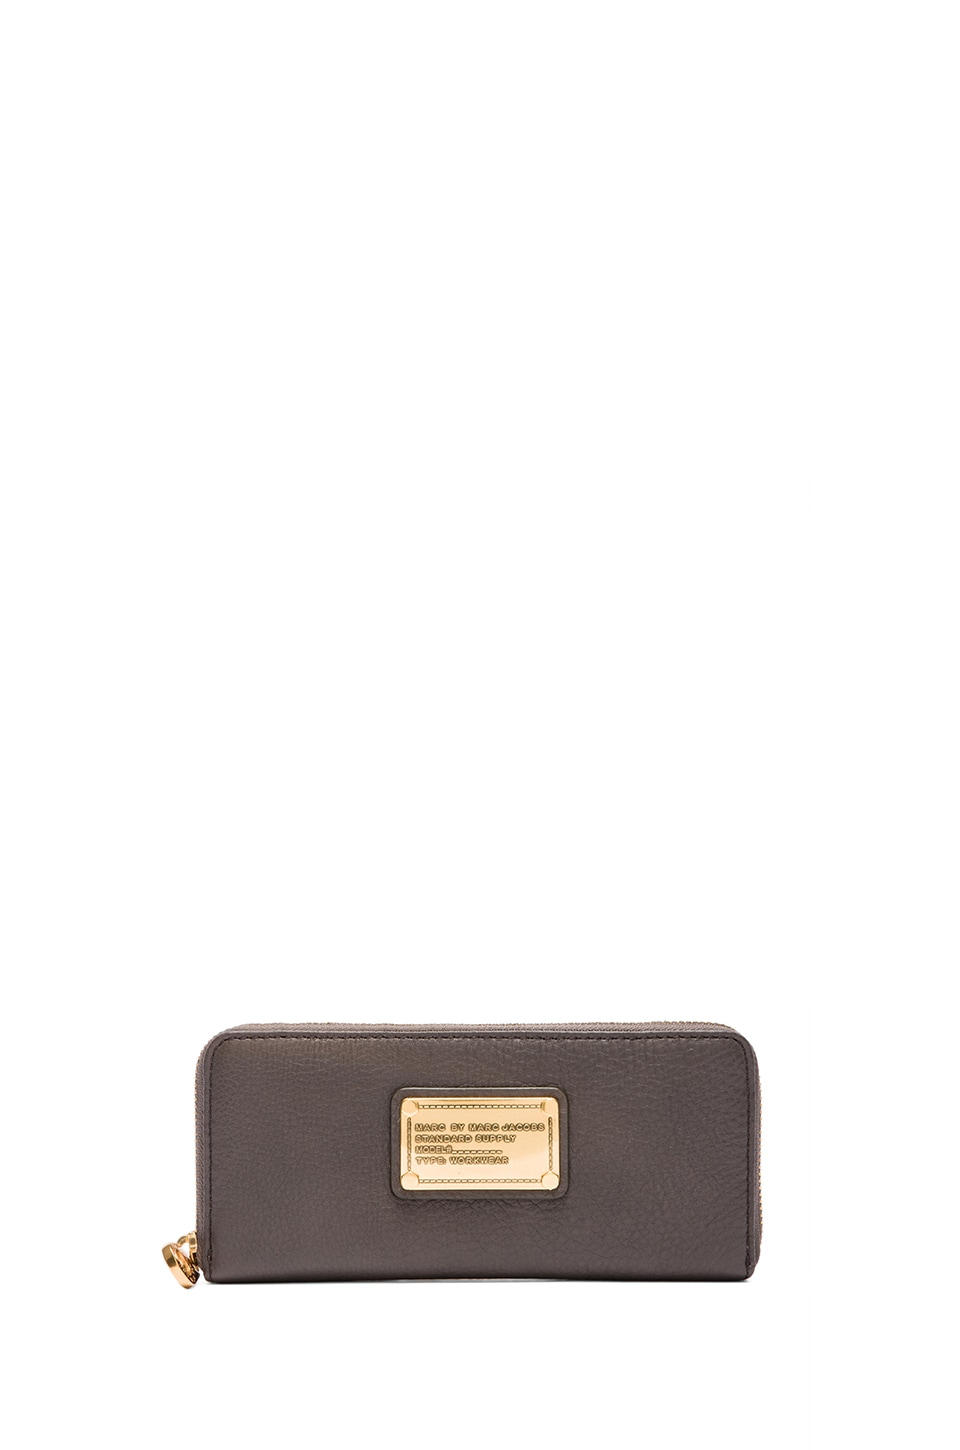 Marc by Marc Jacobs Classic Q Slim Zip Around Wallet in Faded Aluminum